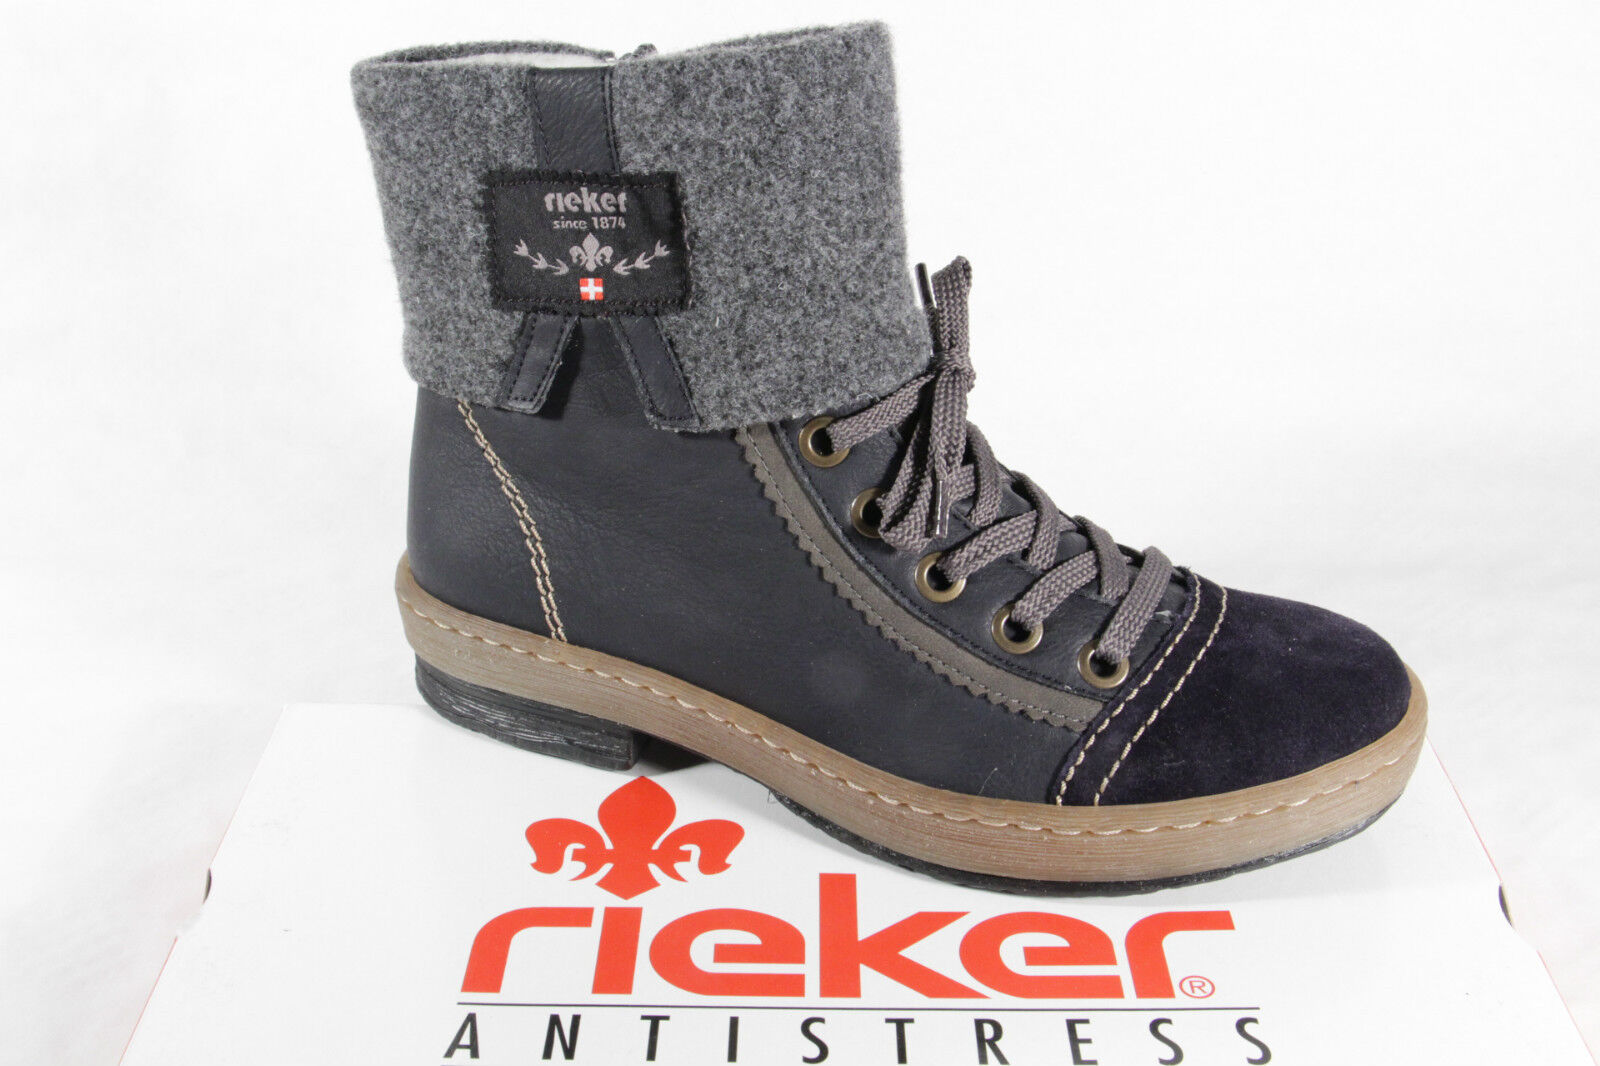 Rieker Women's Boots Z6774 Boots Ankle Boot Winter Winter Winter Boots bluee NEW 9fbad8